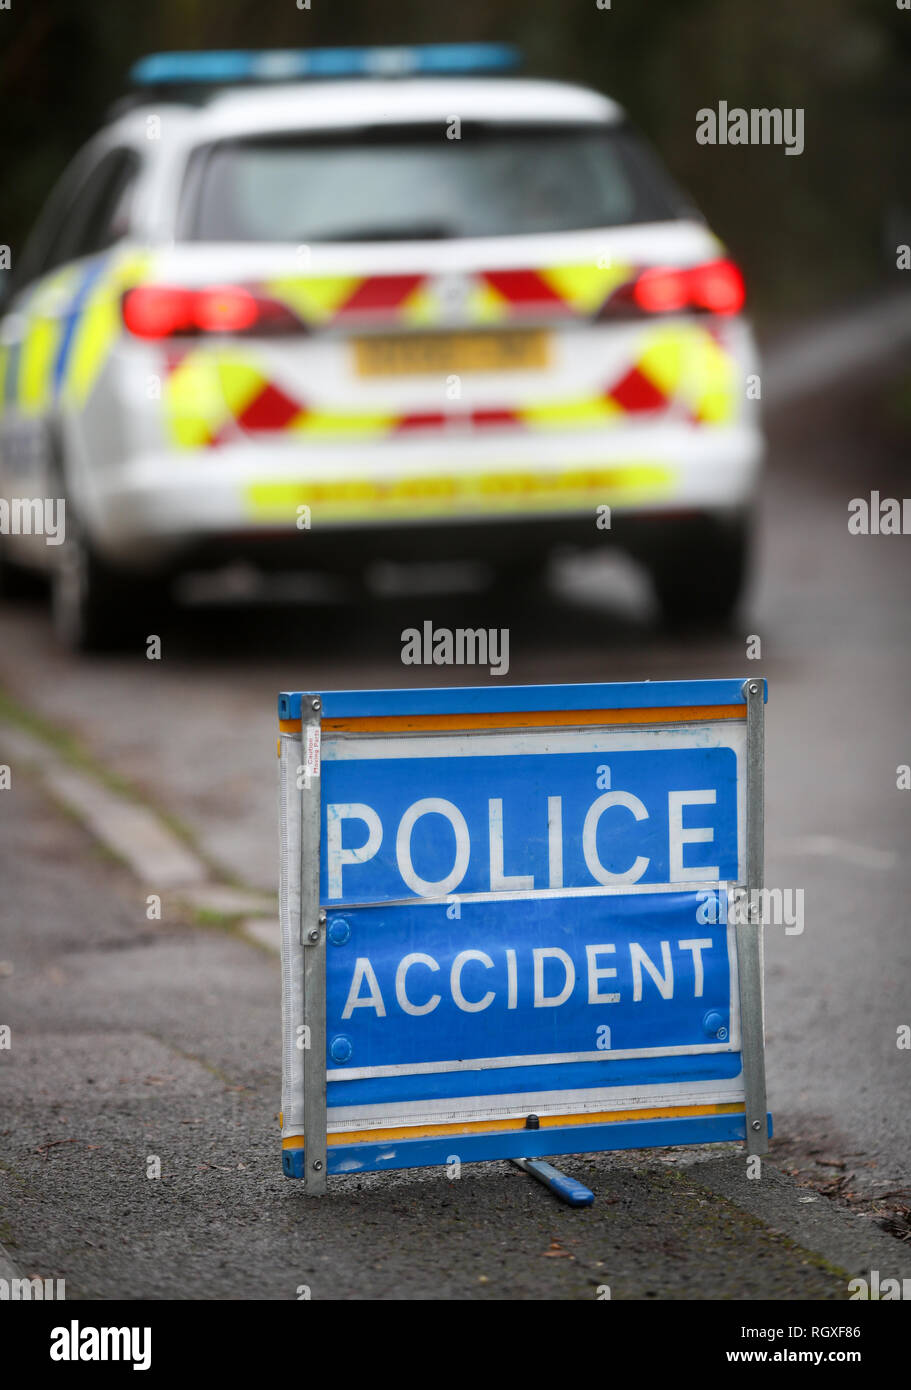 Police accident road sign and police car on a country lane at the scene of an accident - Stock Image